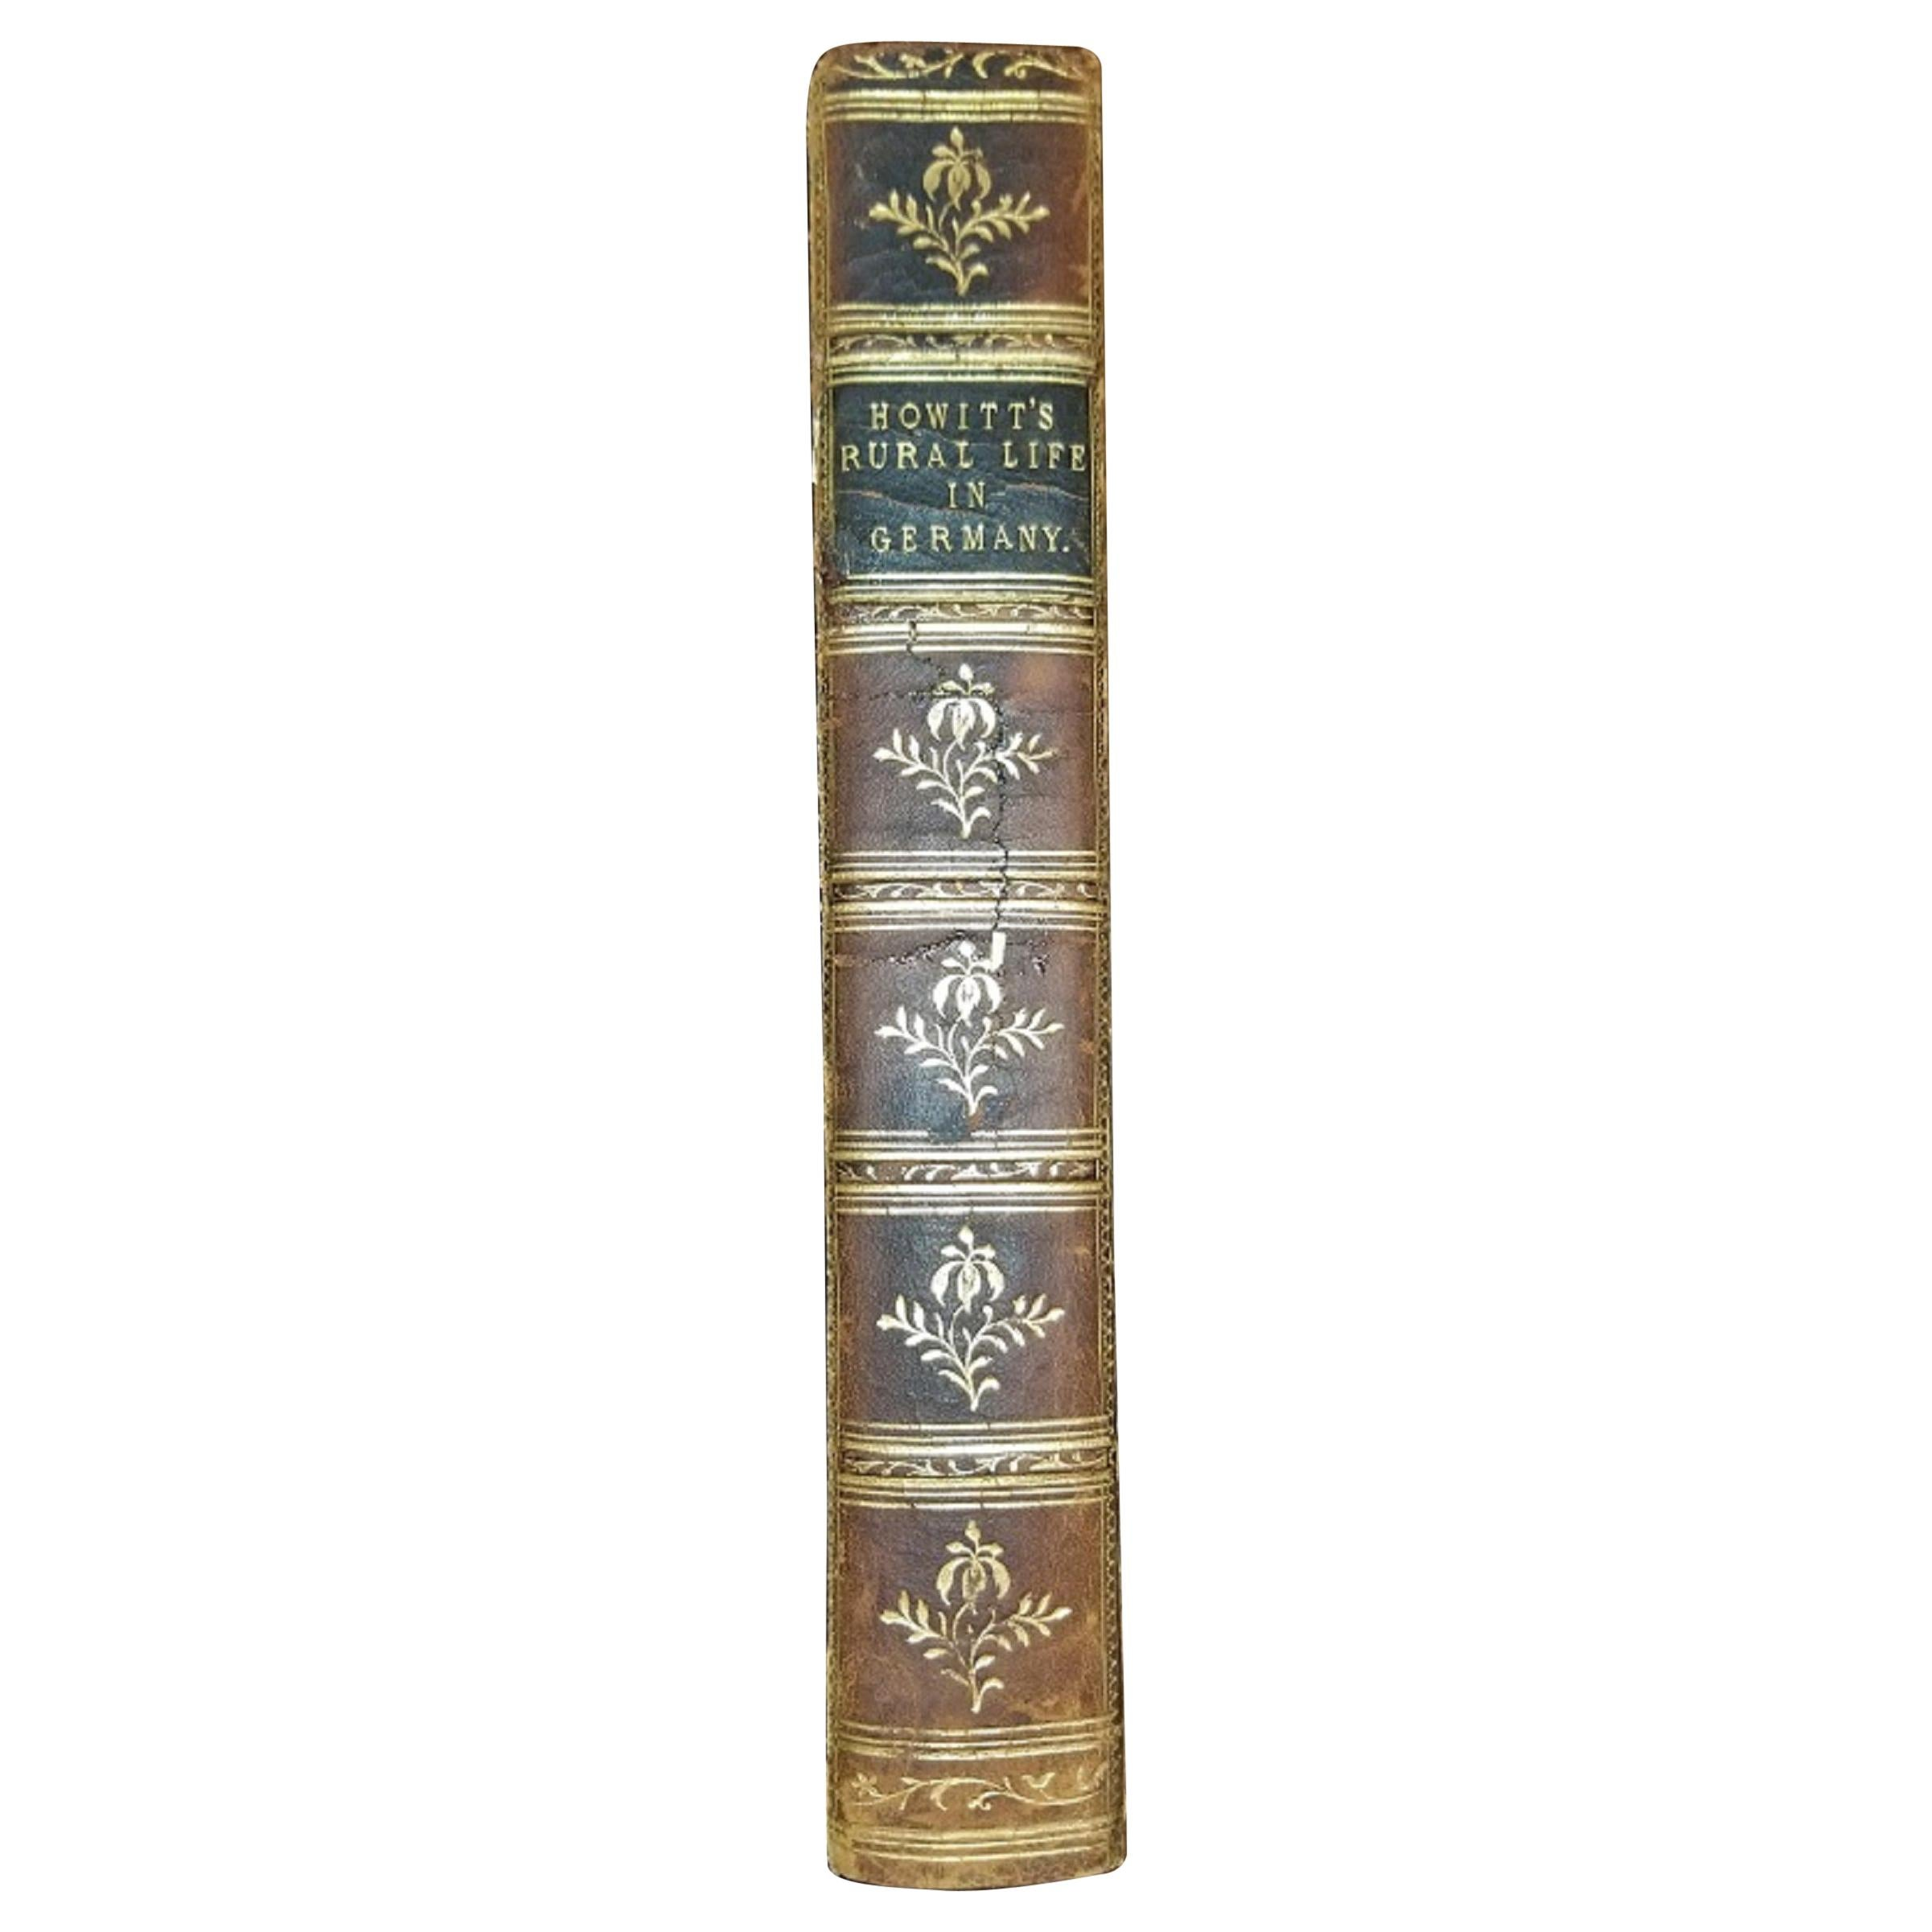 Rural and Domestic Life of Germany by Howitt, 1842